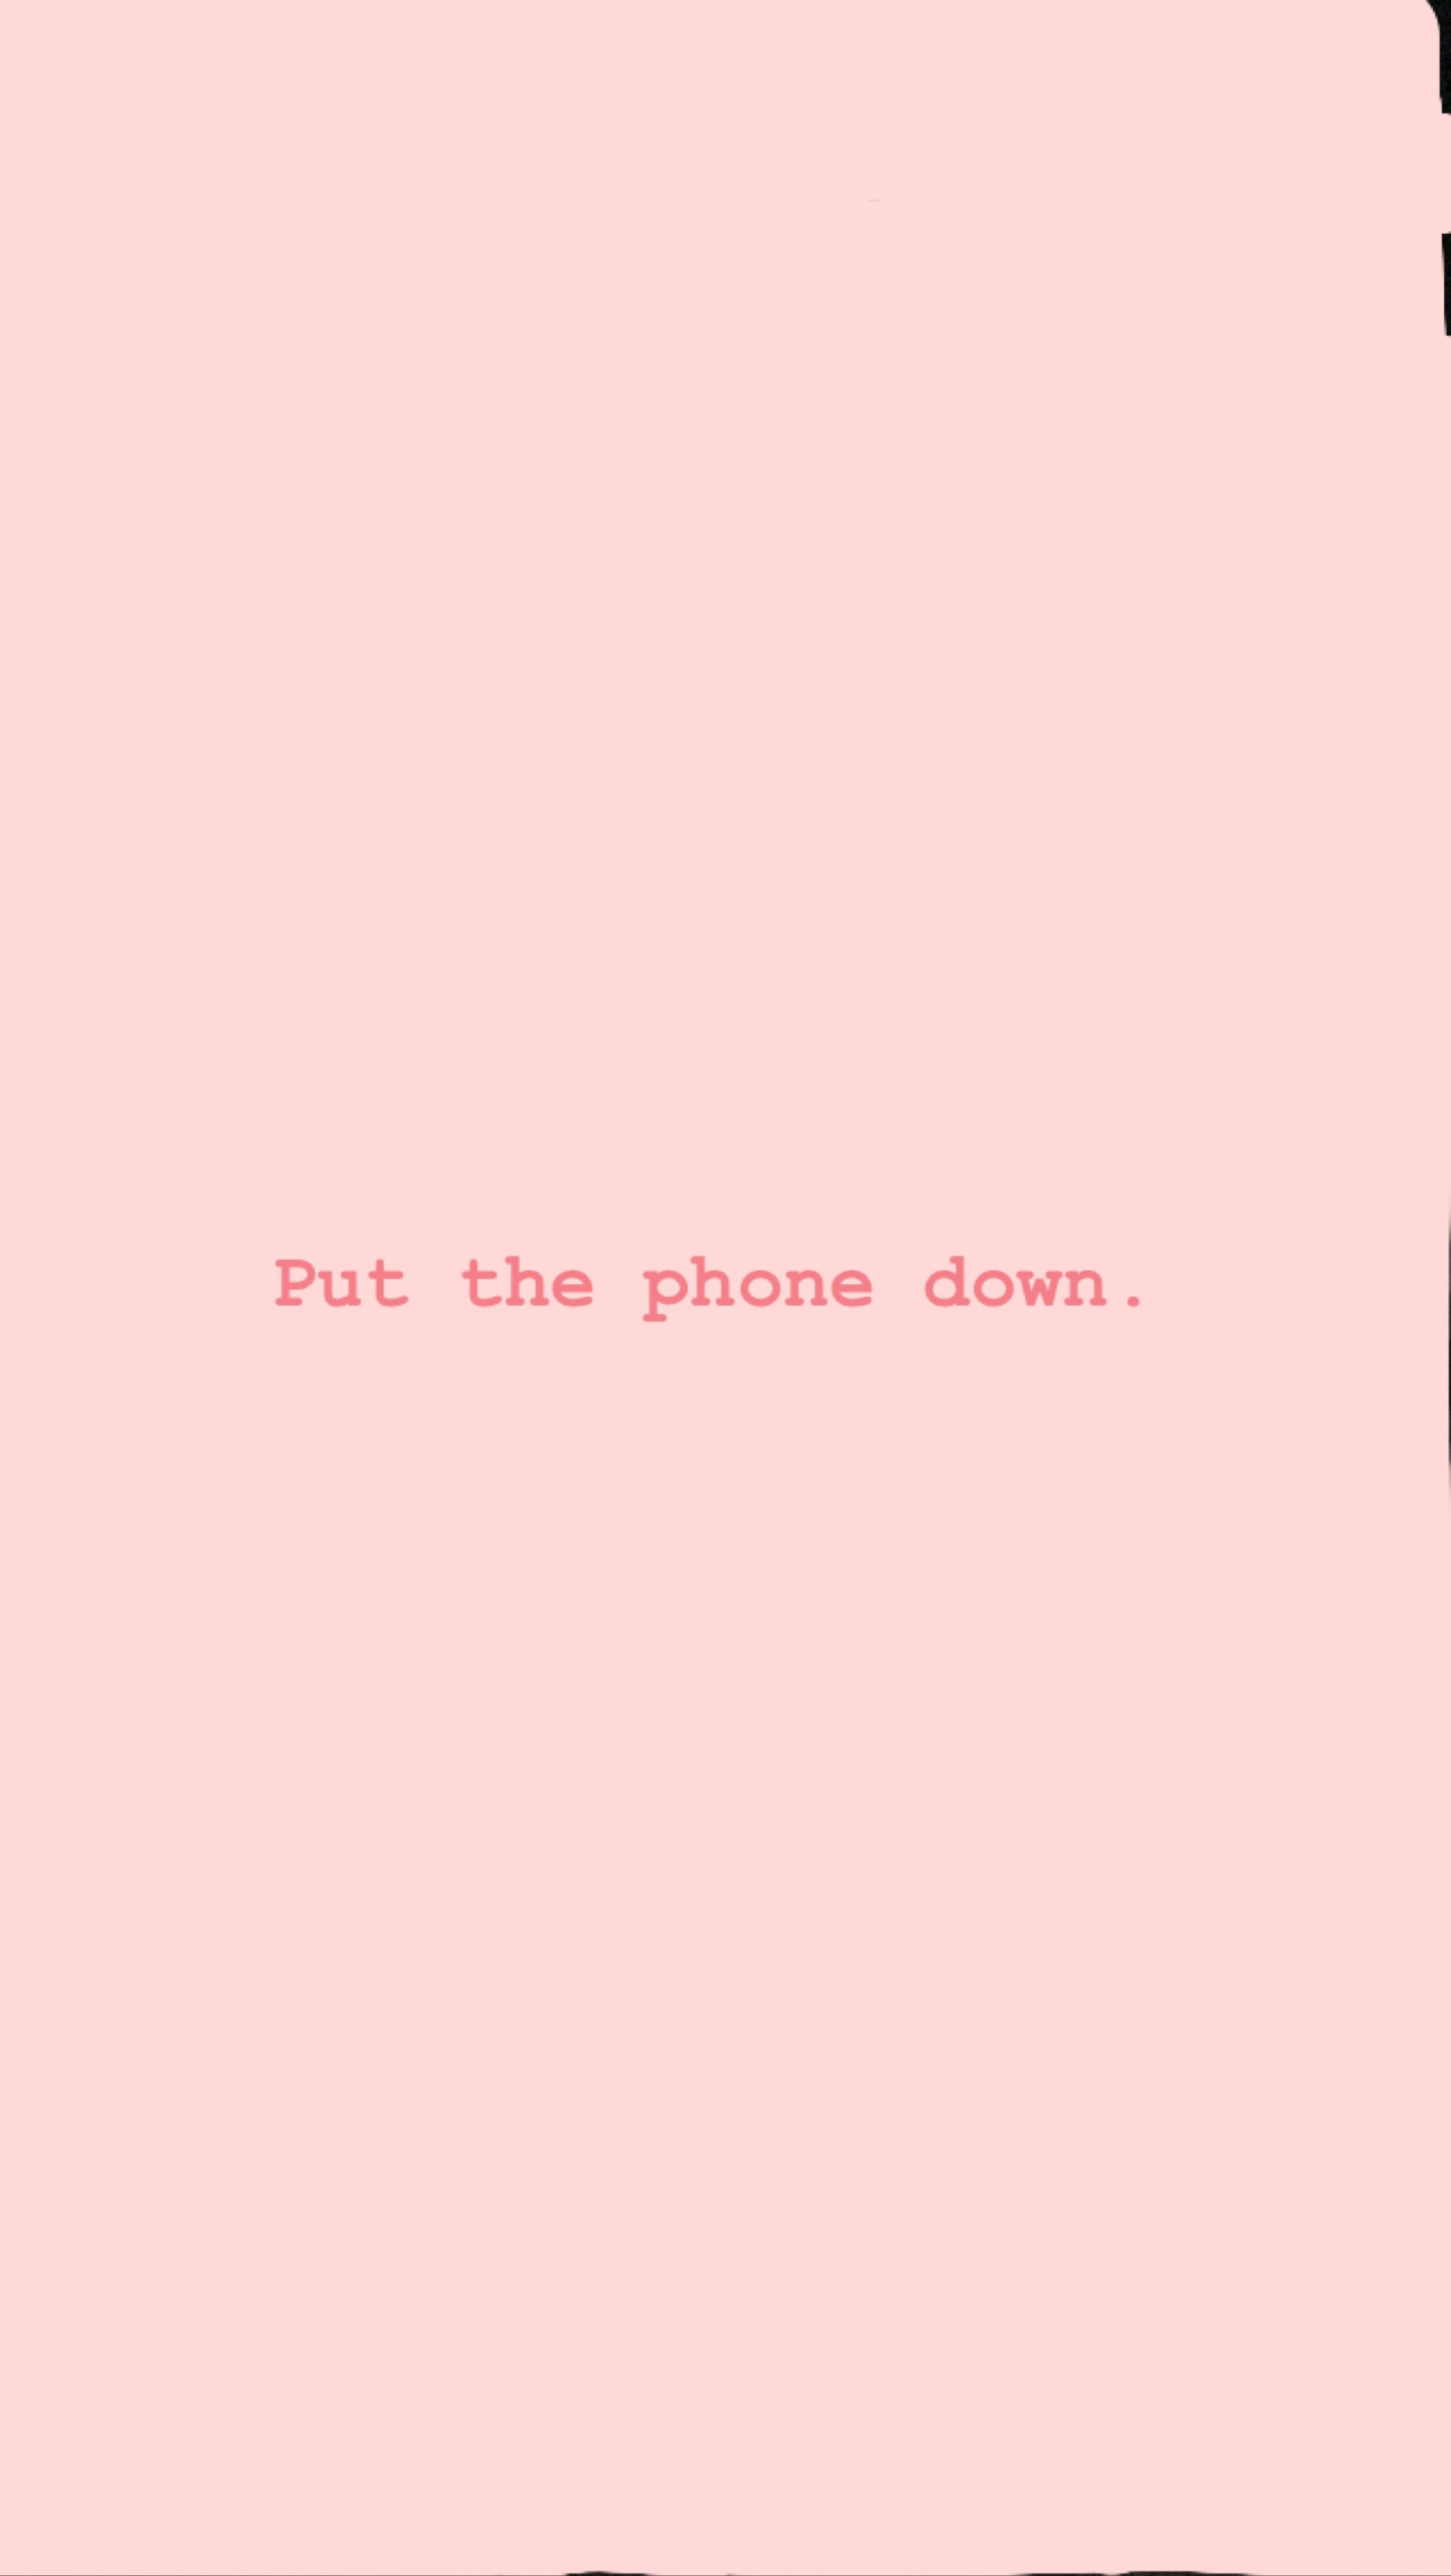 Aesthetic Trendy Teenage Wallpaper : aesthetic, trendy, teenage, wallpaper, Odłóż, Telefon, Iphone, Wallpaper, Quotes, Funny,, Quotes,